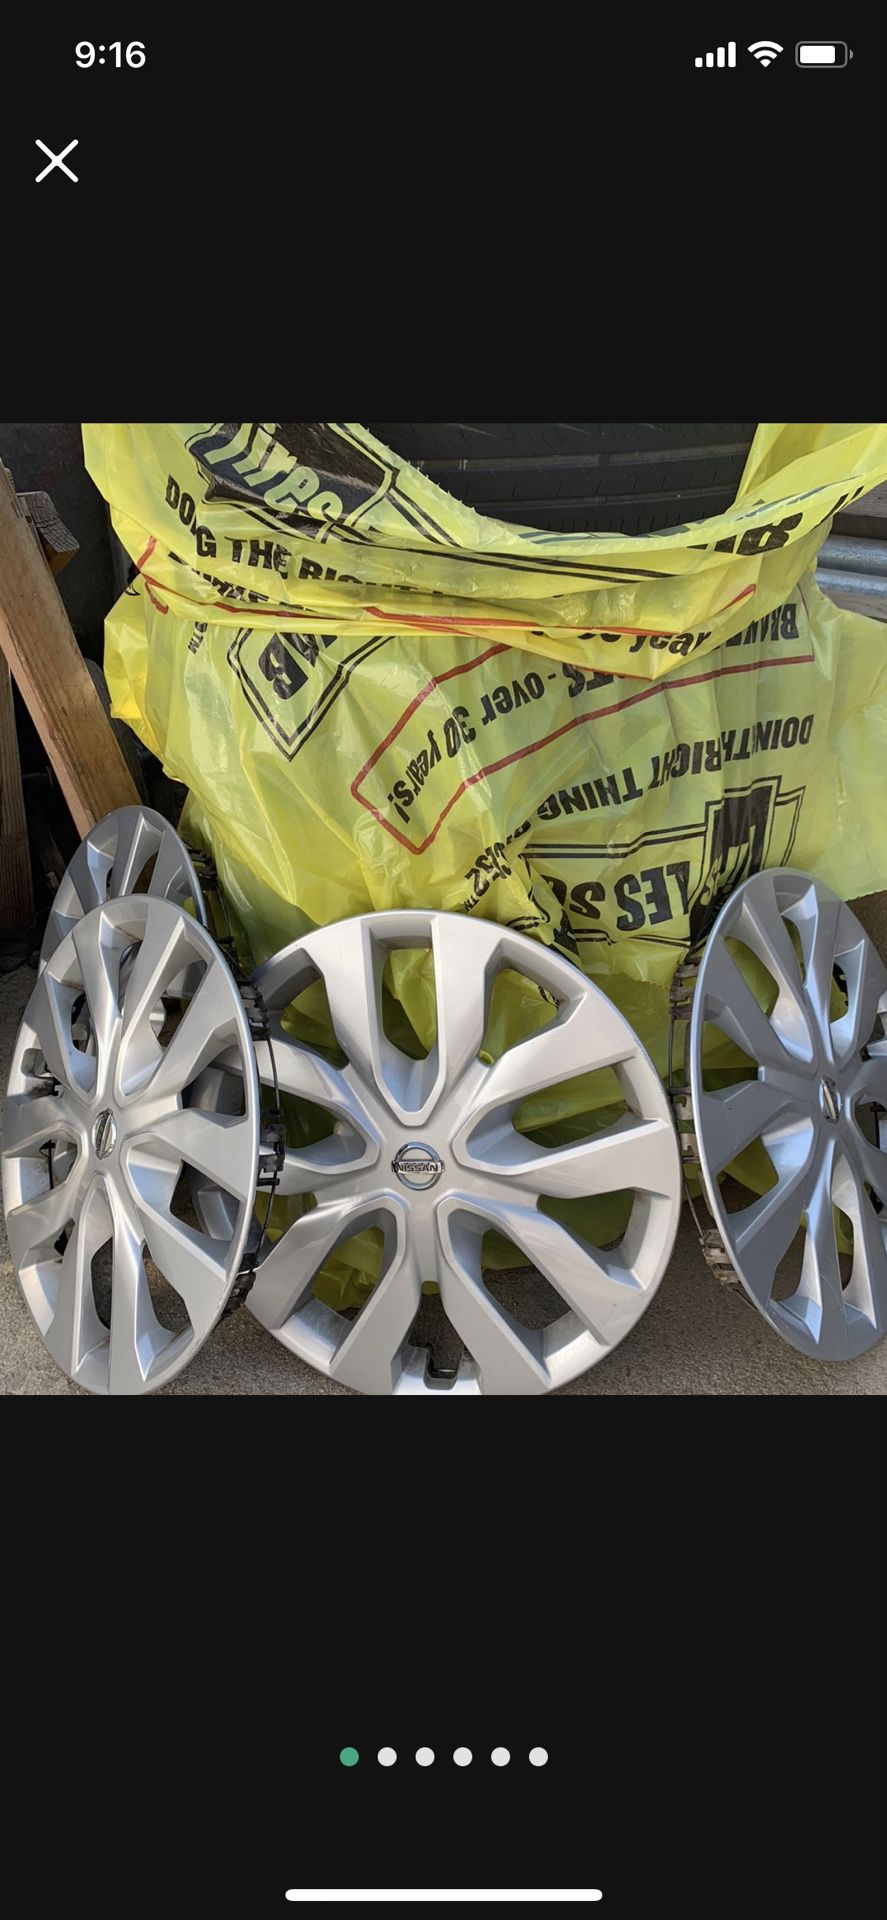 2015 Nissan Stock wheels and tires